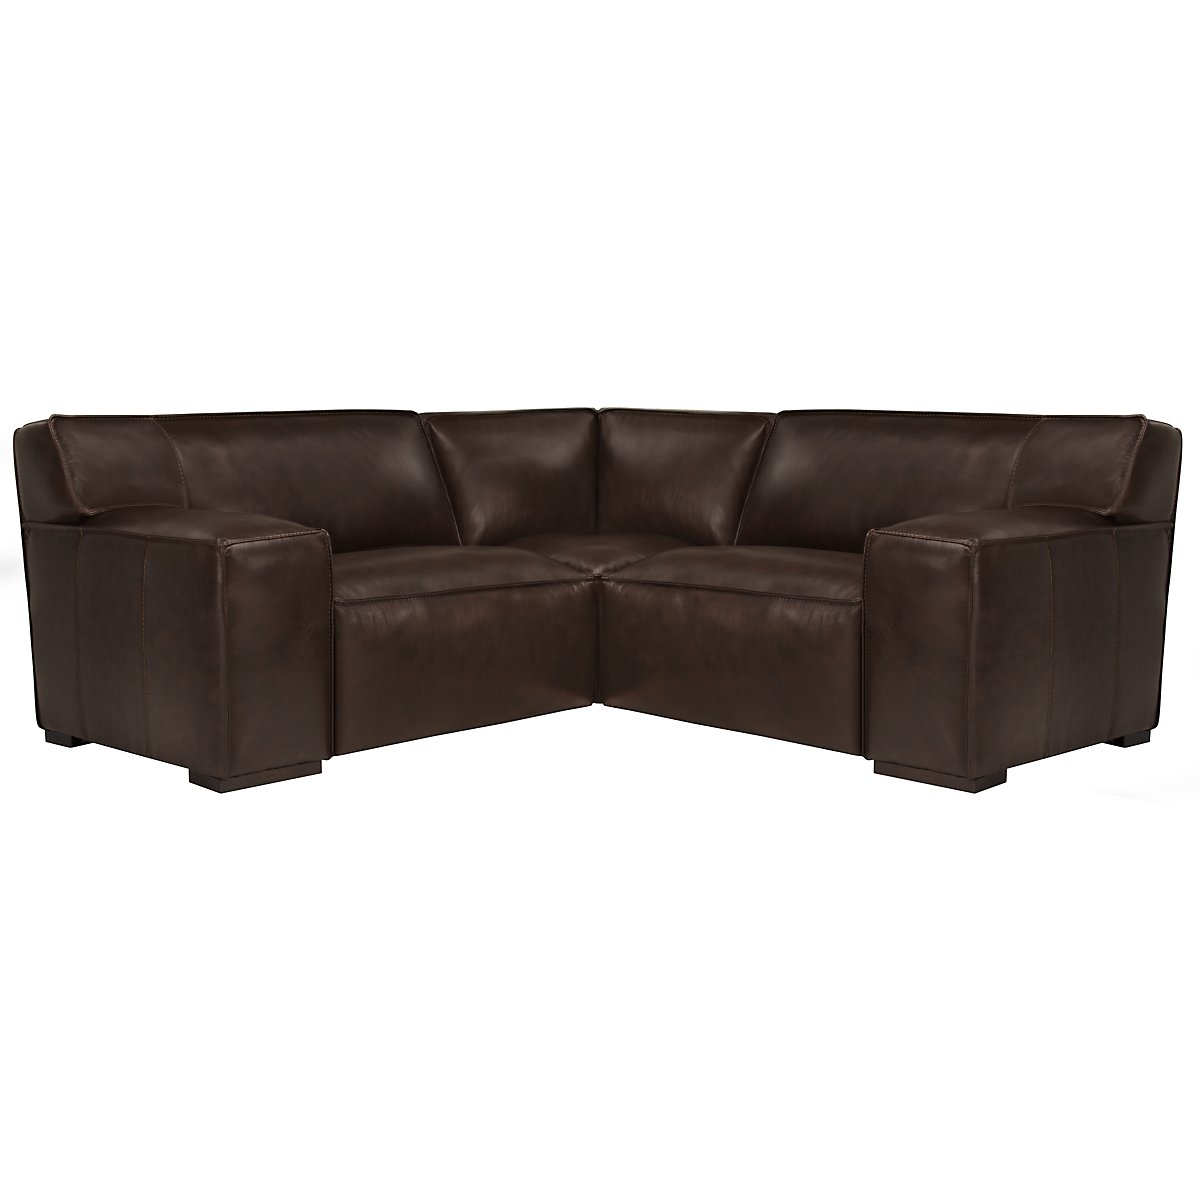 Asher Dk Brown Leather & Vinyl Two-Arm Sectional